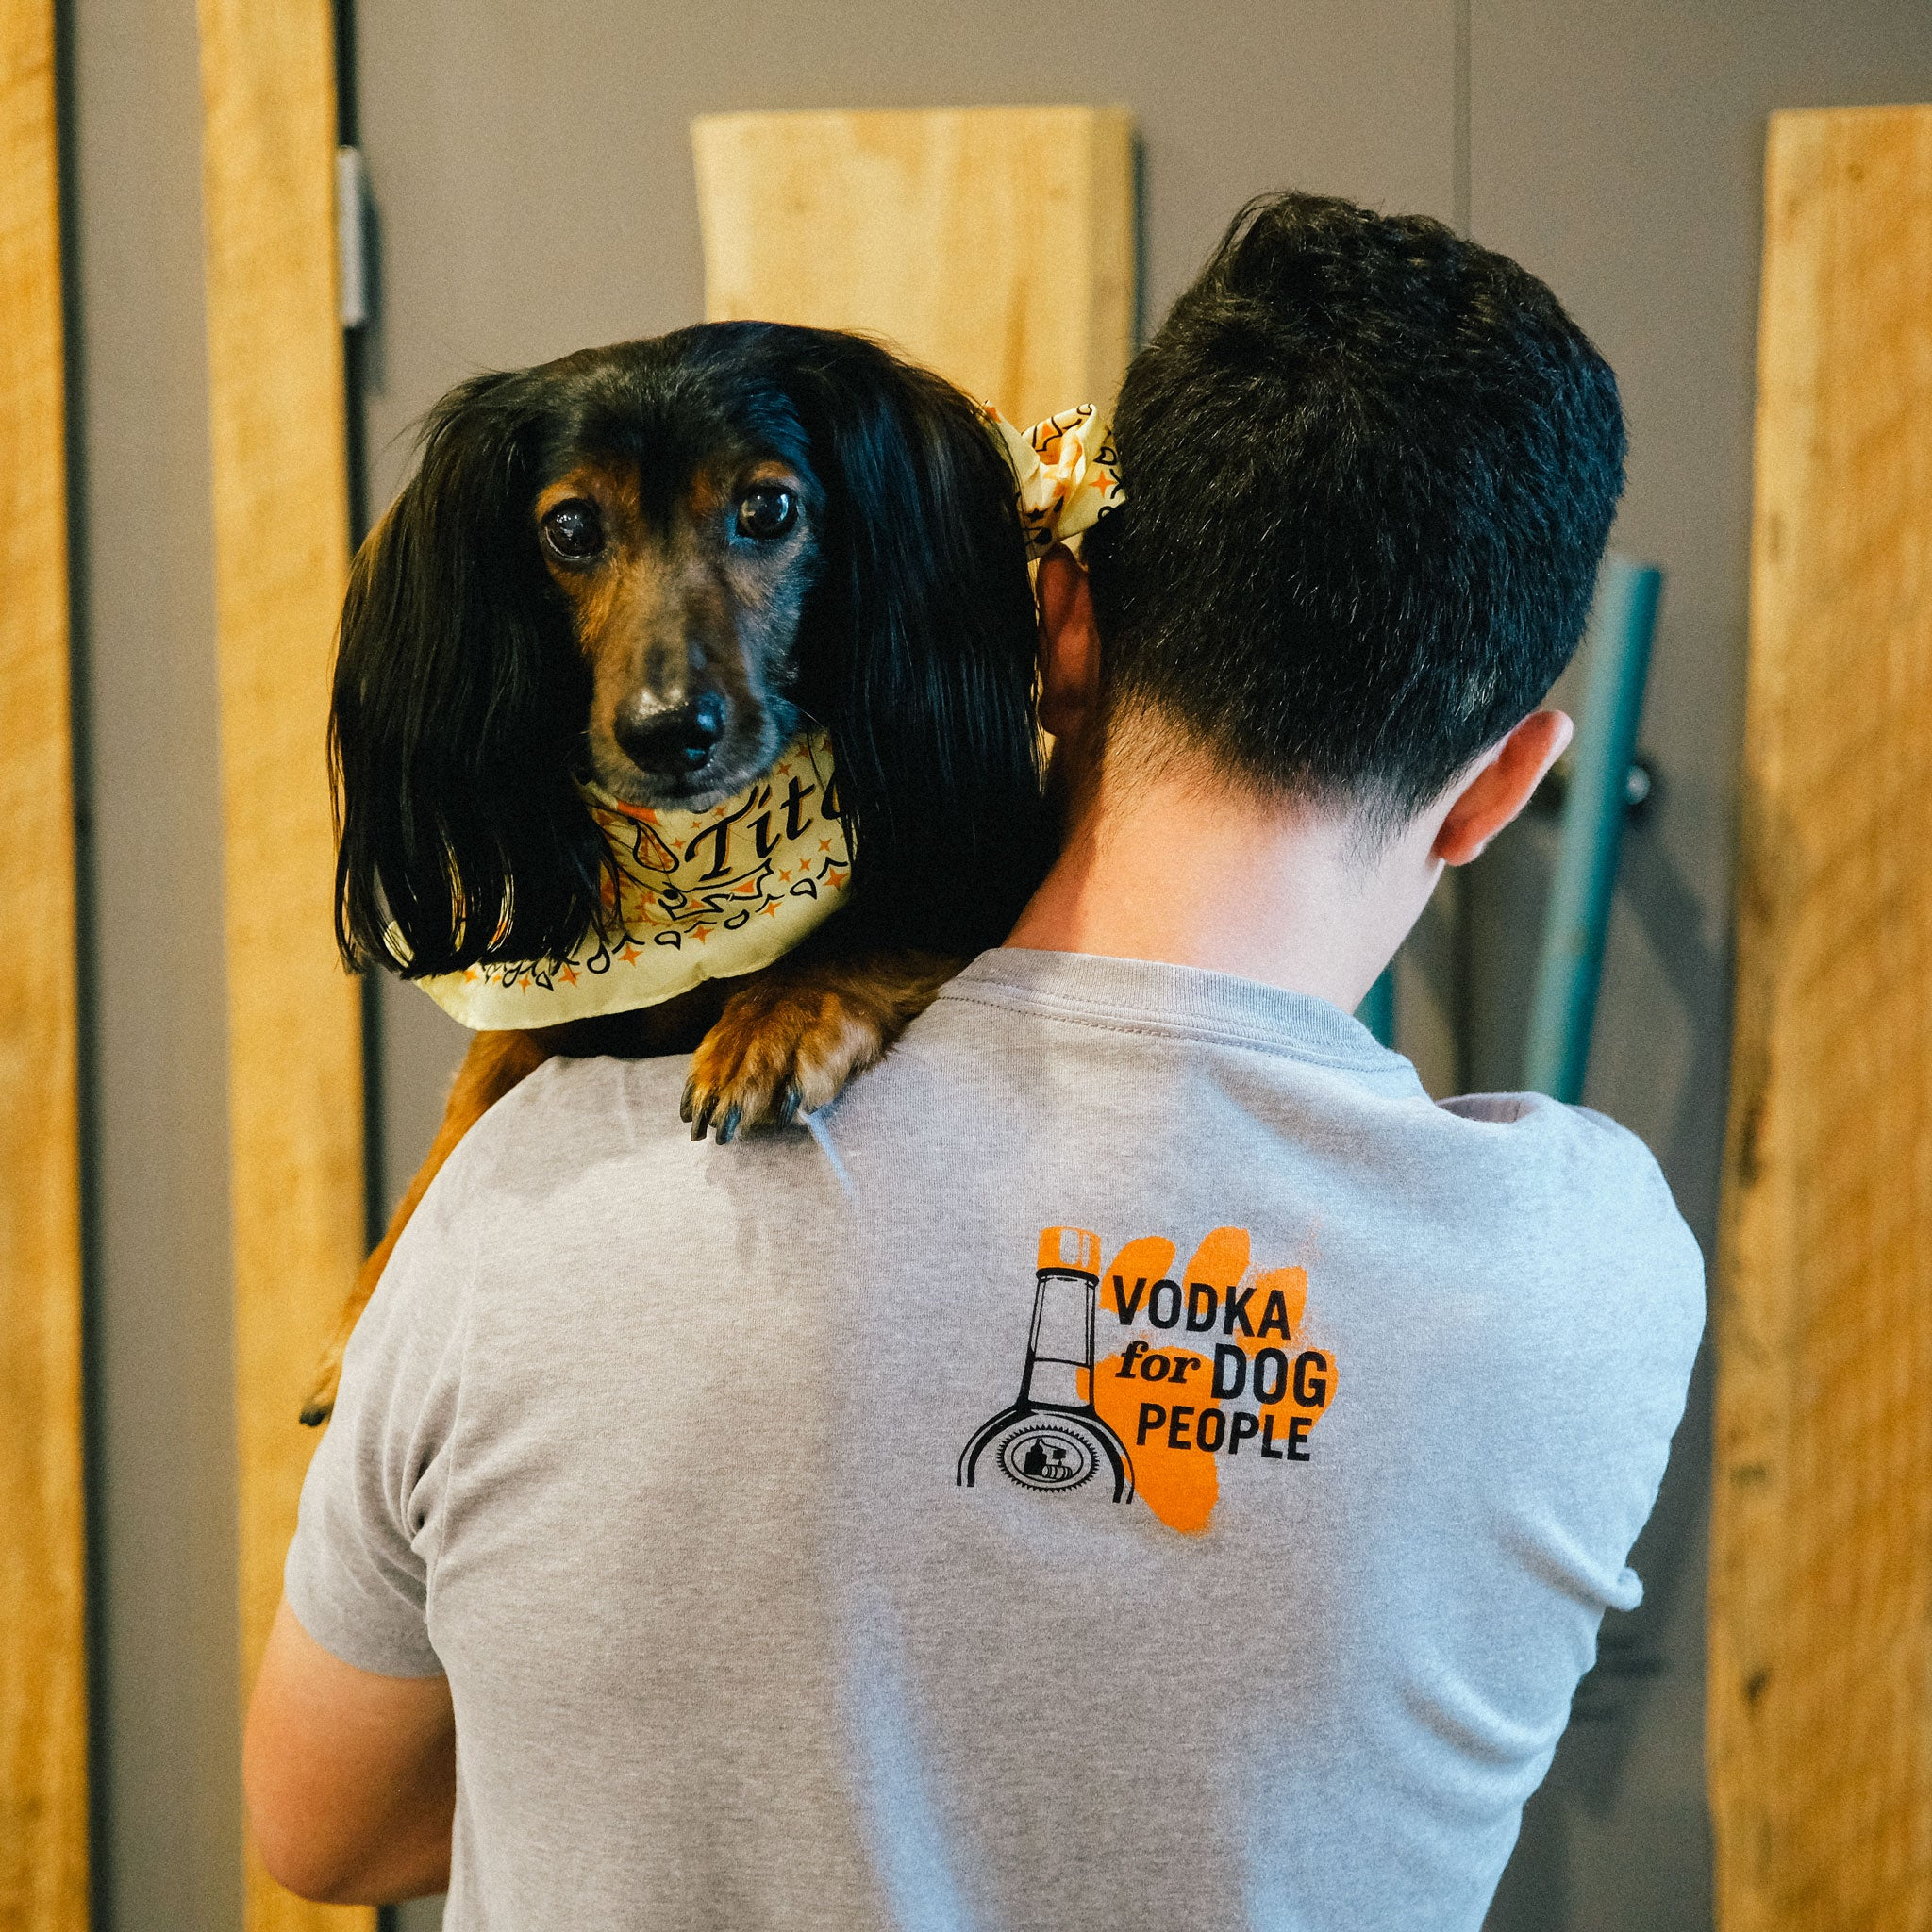 Back of person holding a dog and wearing gray short-sleeve t-shirt with Vodka For Dog People logo